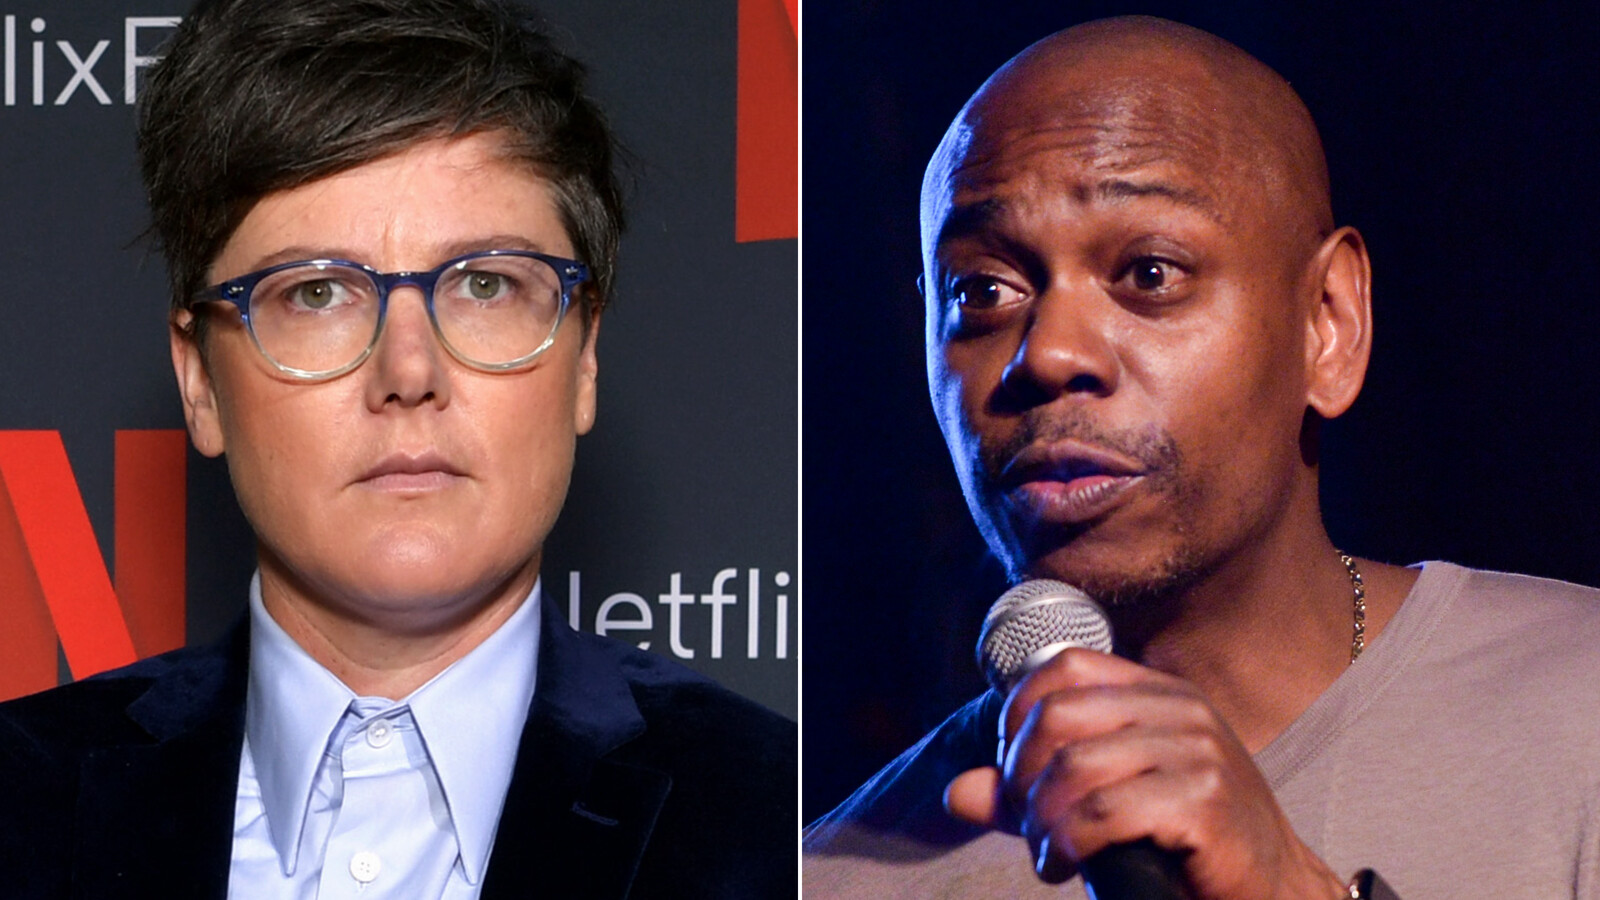 Hannah Gadsby fans are not happy with Dave Chappelle for saying she's not funny